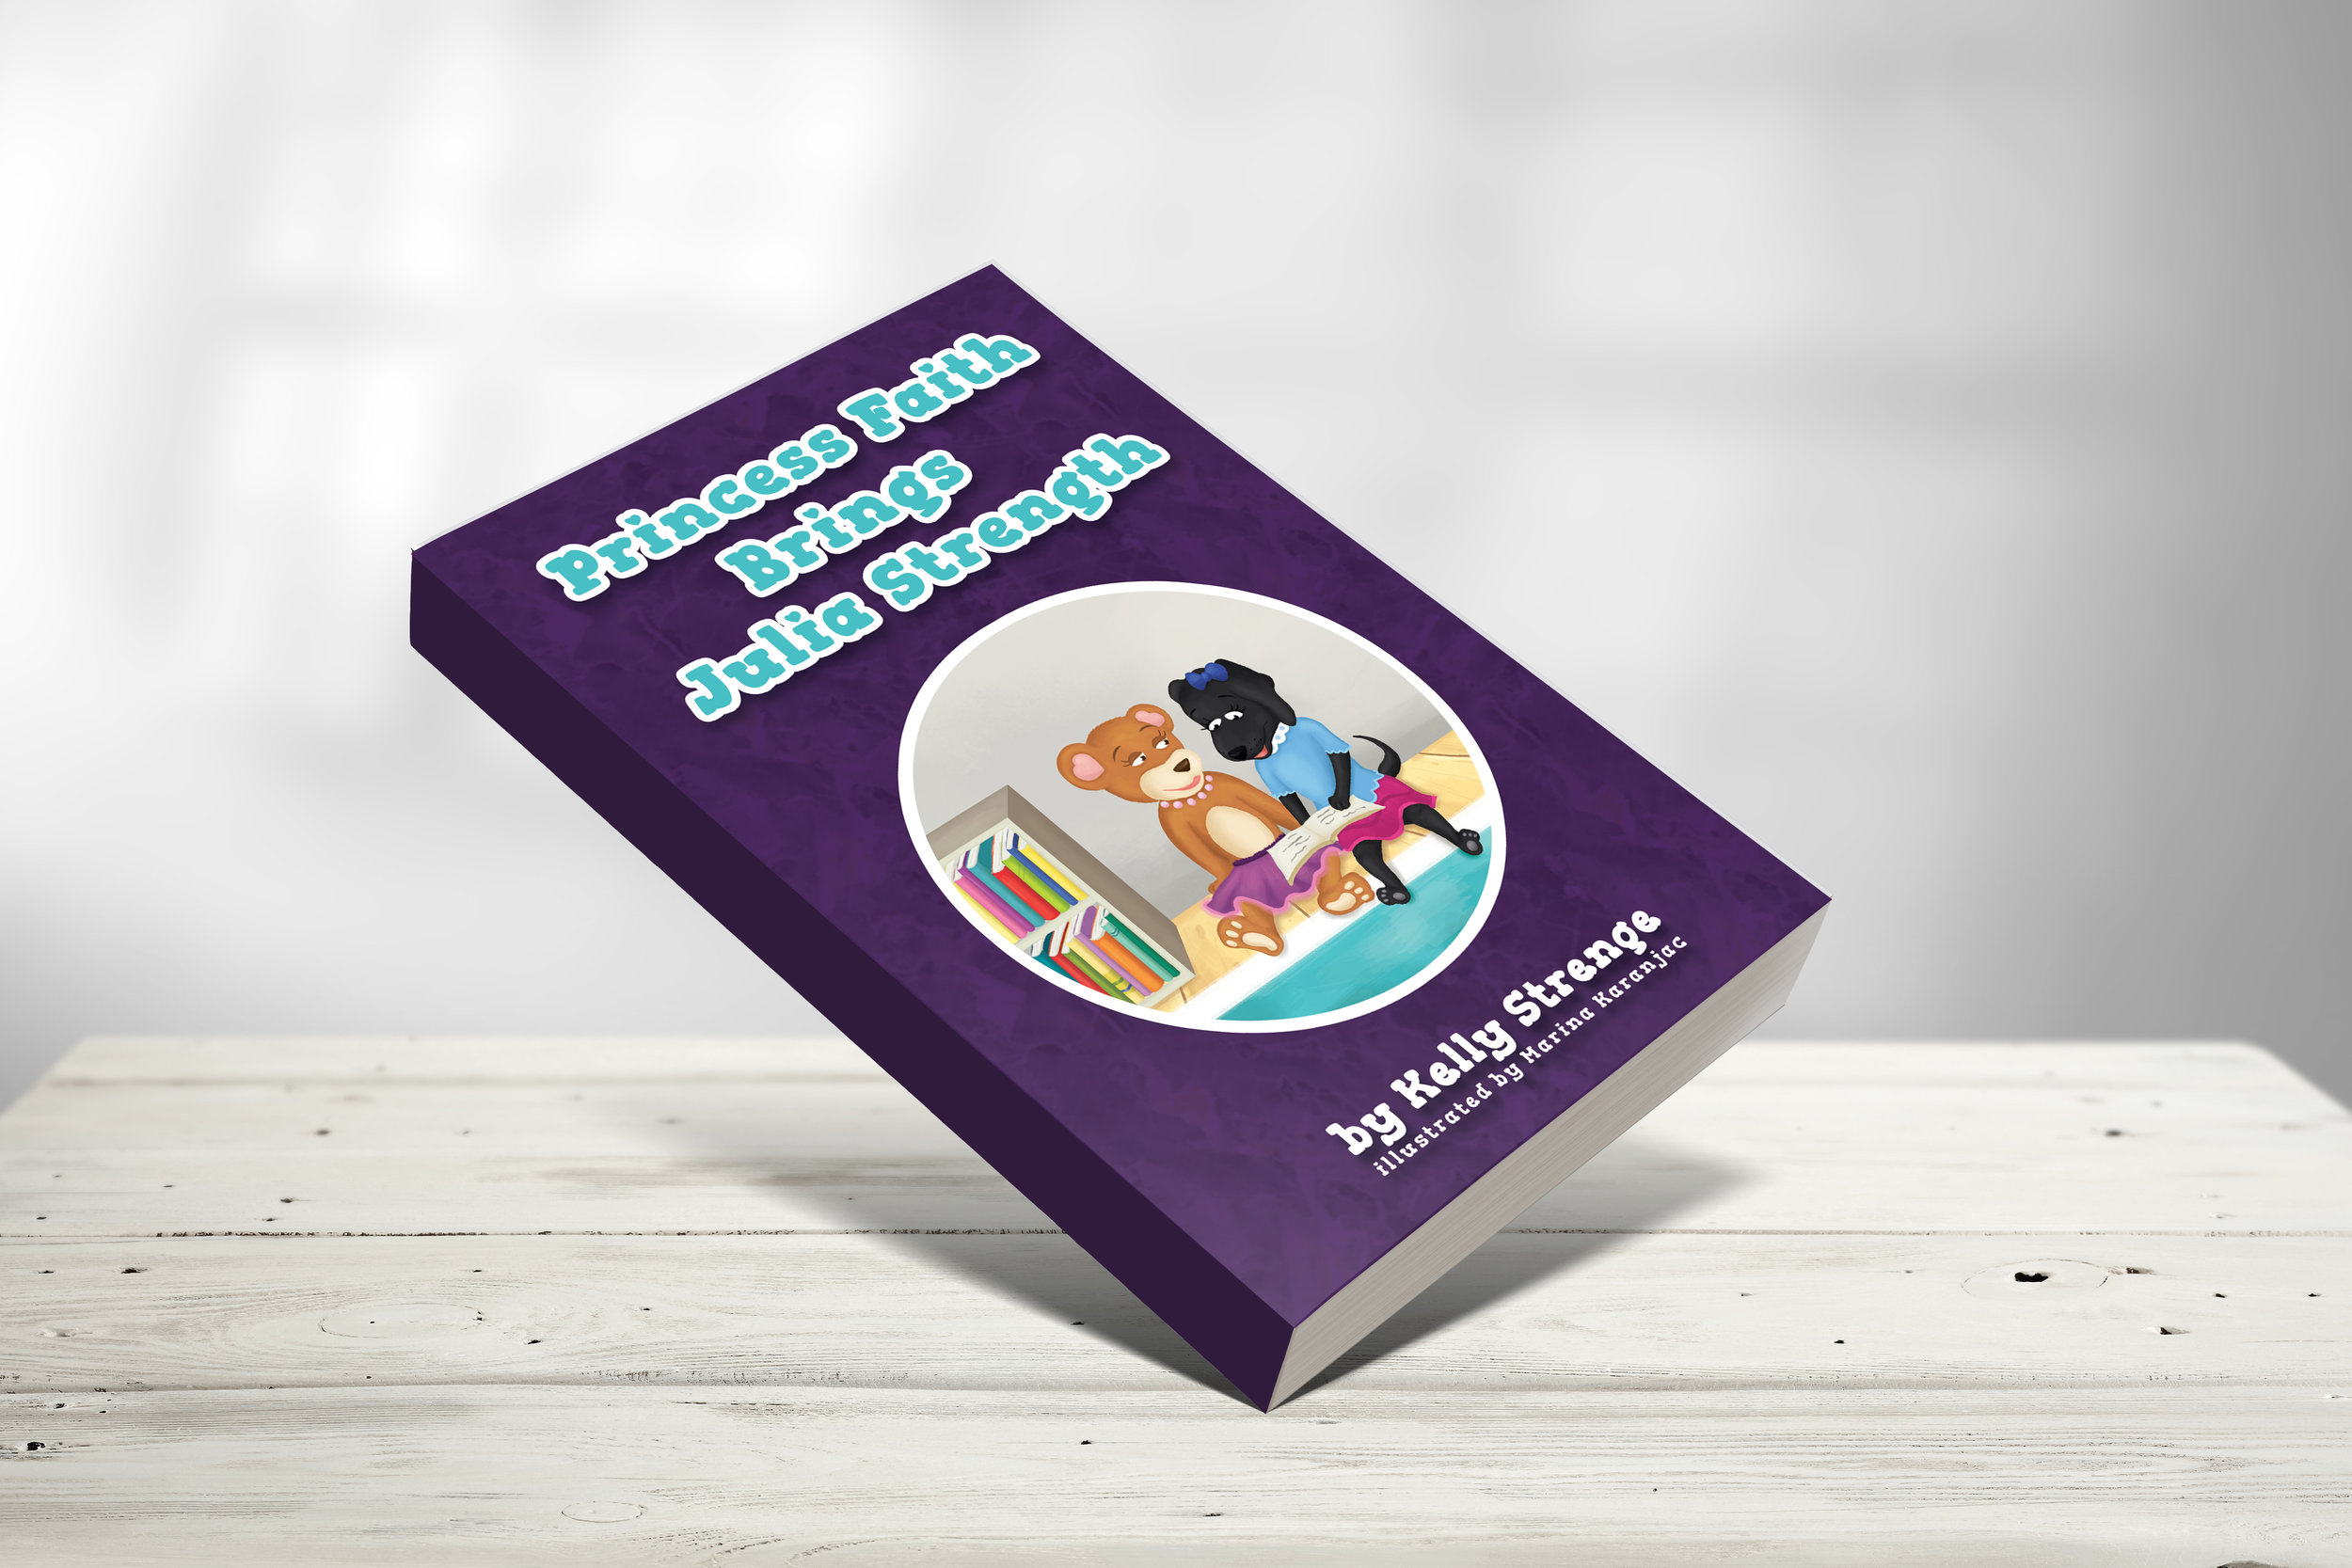 Princess Faith Brings Julia Strength - Julia is struggling in school. She is having a hard time learning to read. How can Princess Faith help Julia find her inner strength?This book focuses on Philippians 4:13,